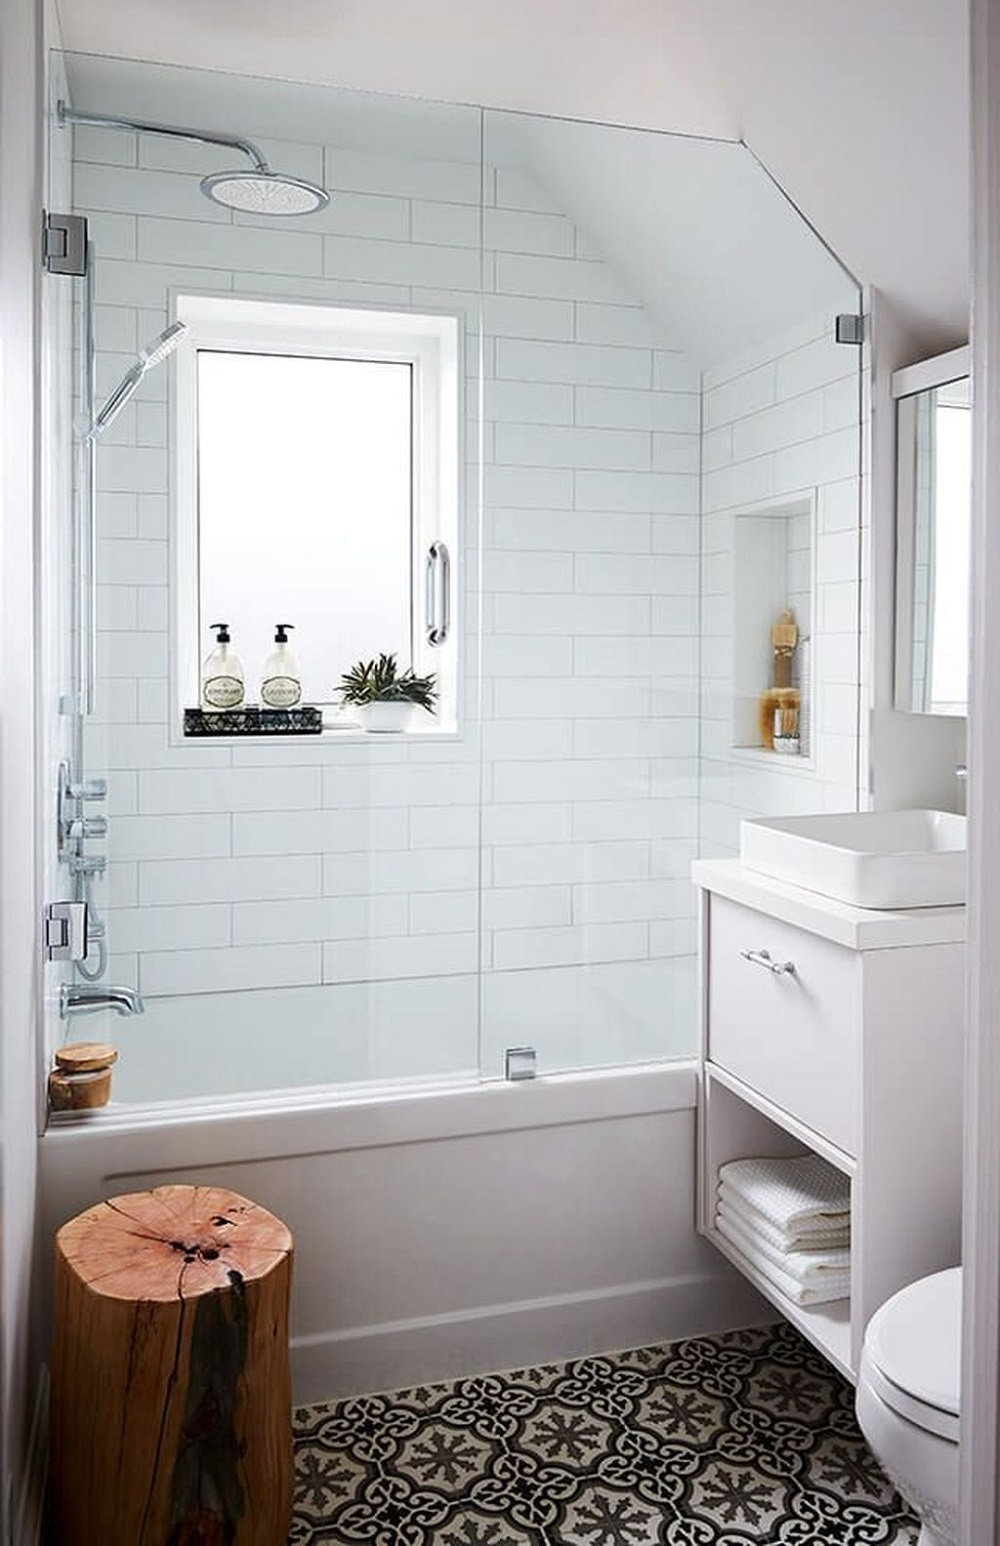 van2-2 Neat corner bathroom vanity ideas that you will find useful